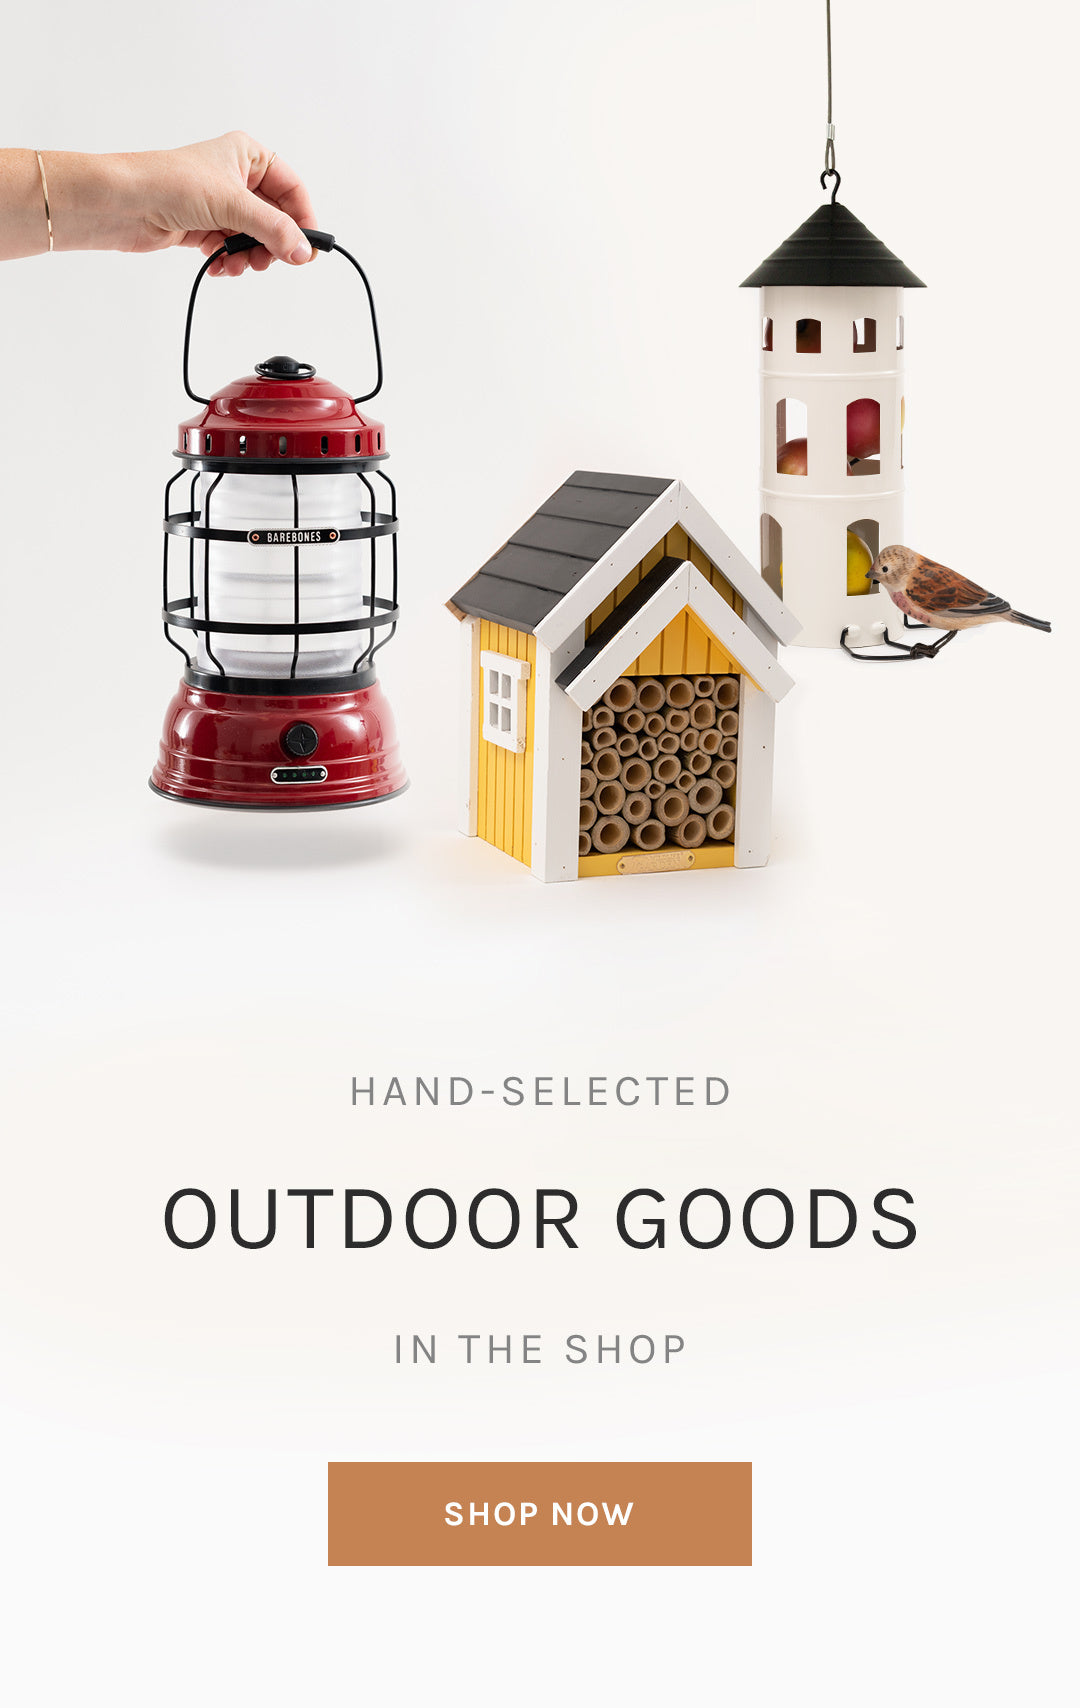 Hand-Selected Outdoor Goods in the Shop